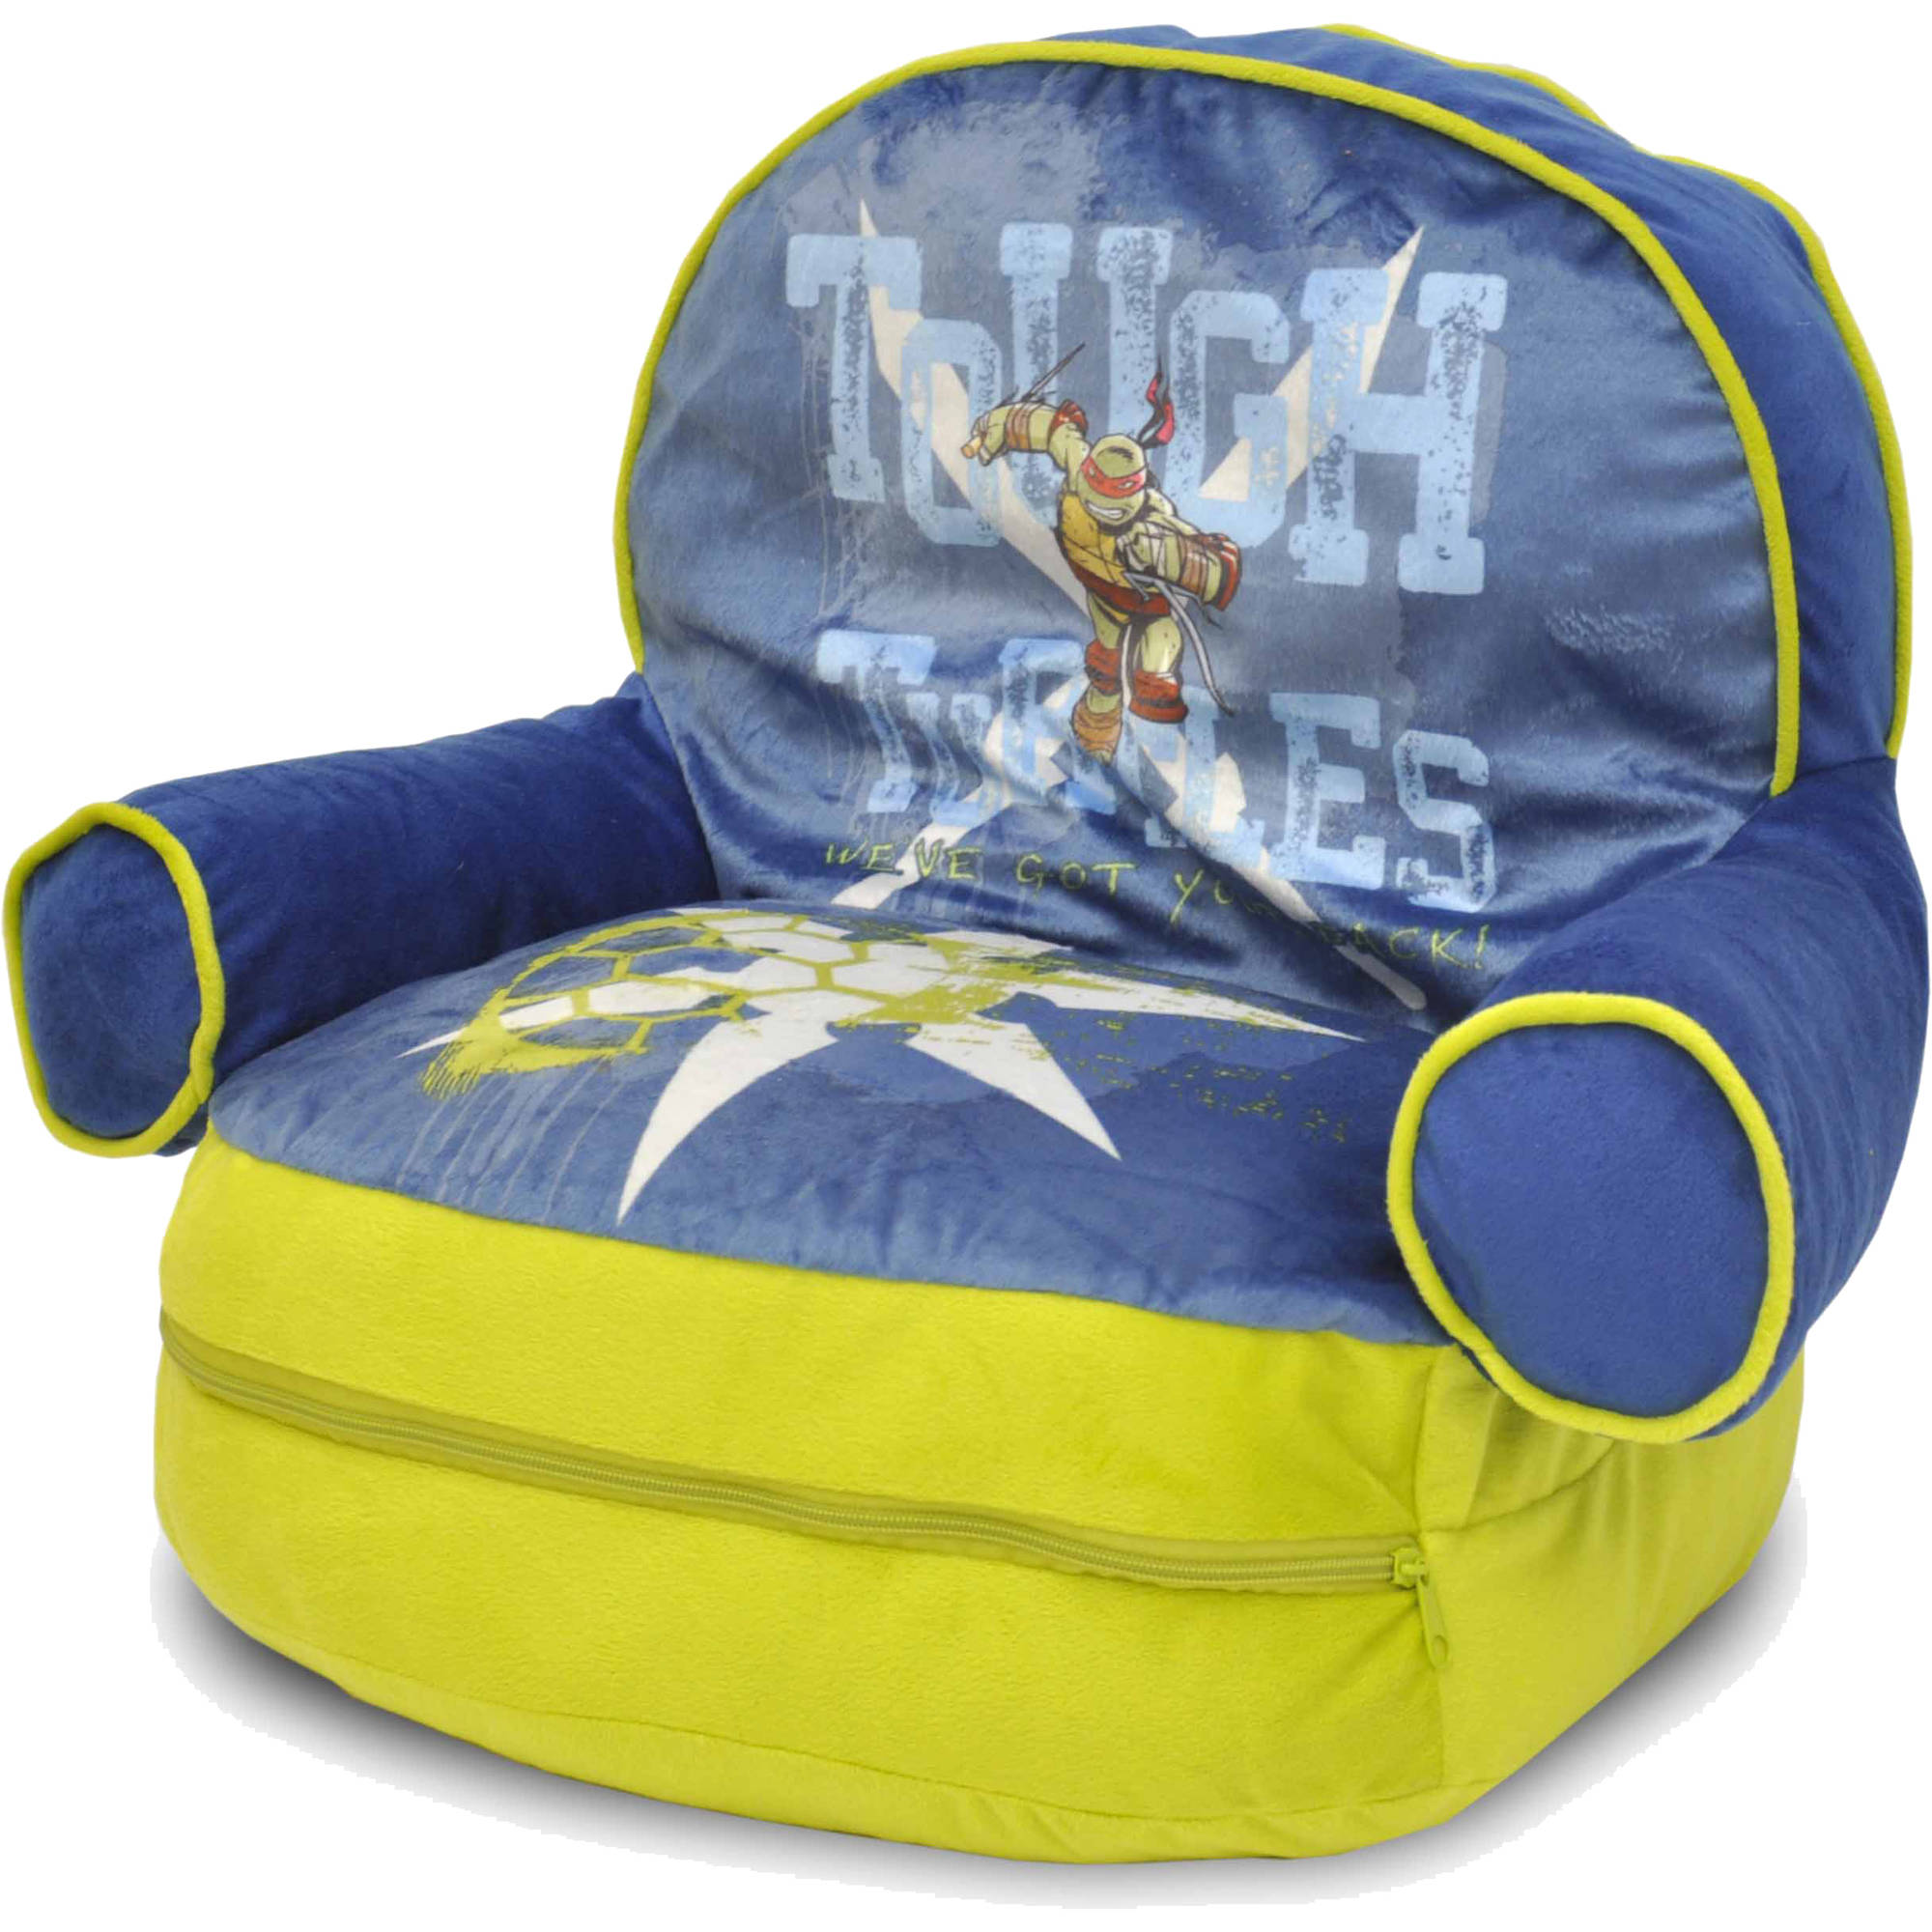 Nickelodeon Ninja Turtles Bean Bag with BONUS Slumber Bag